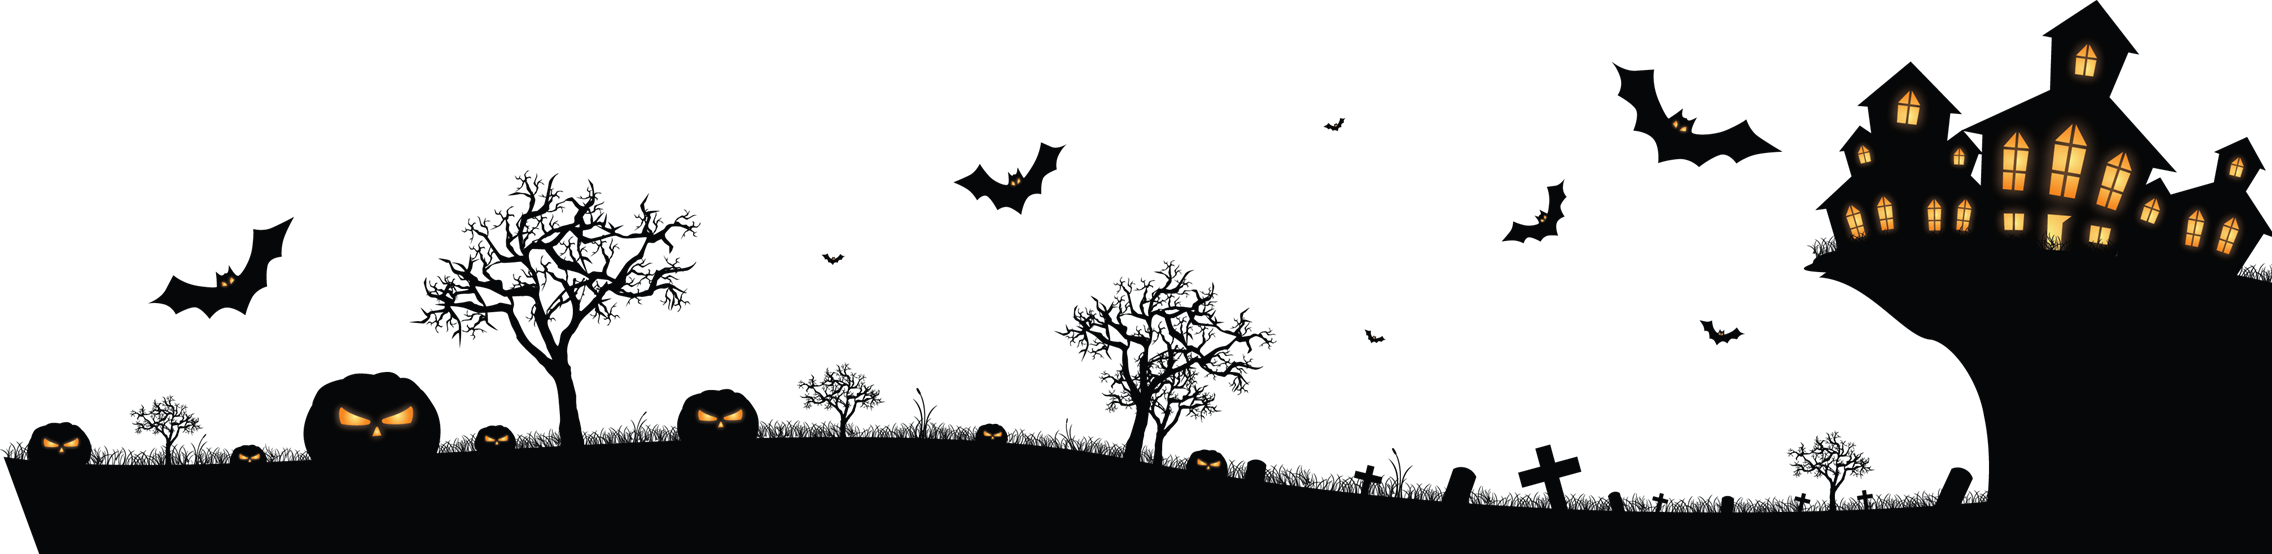 Halloween backgrounds png. Pictures group index of